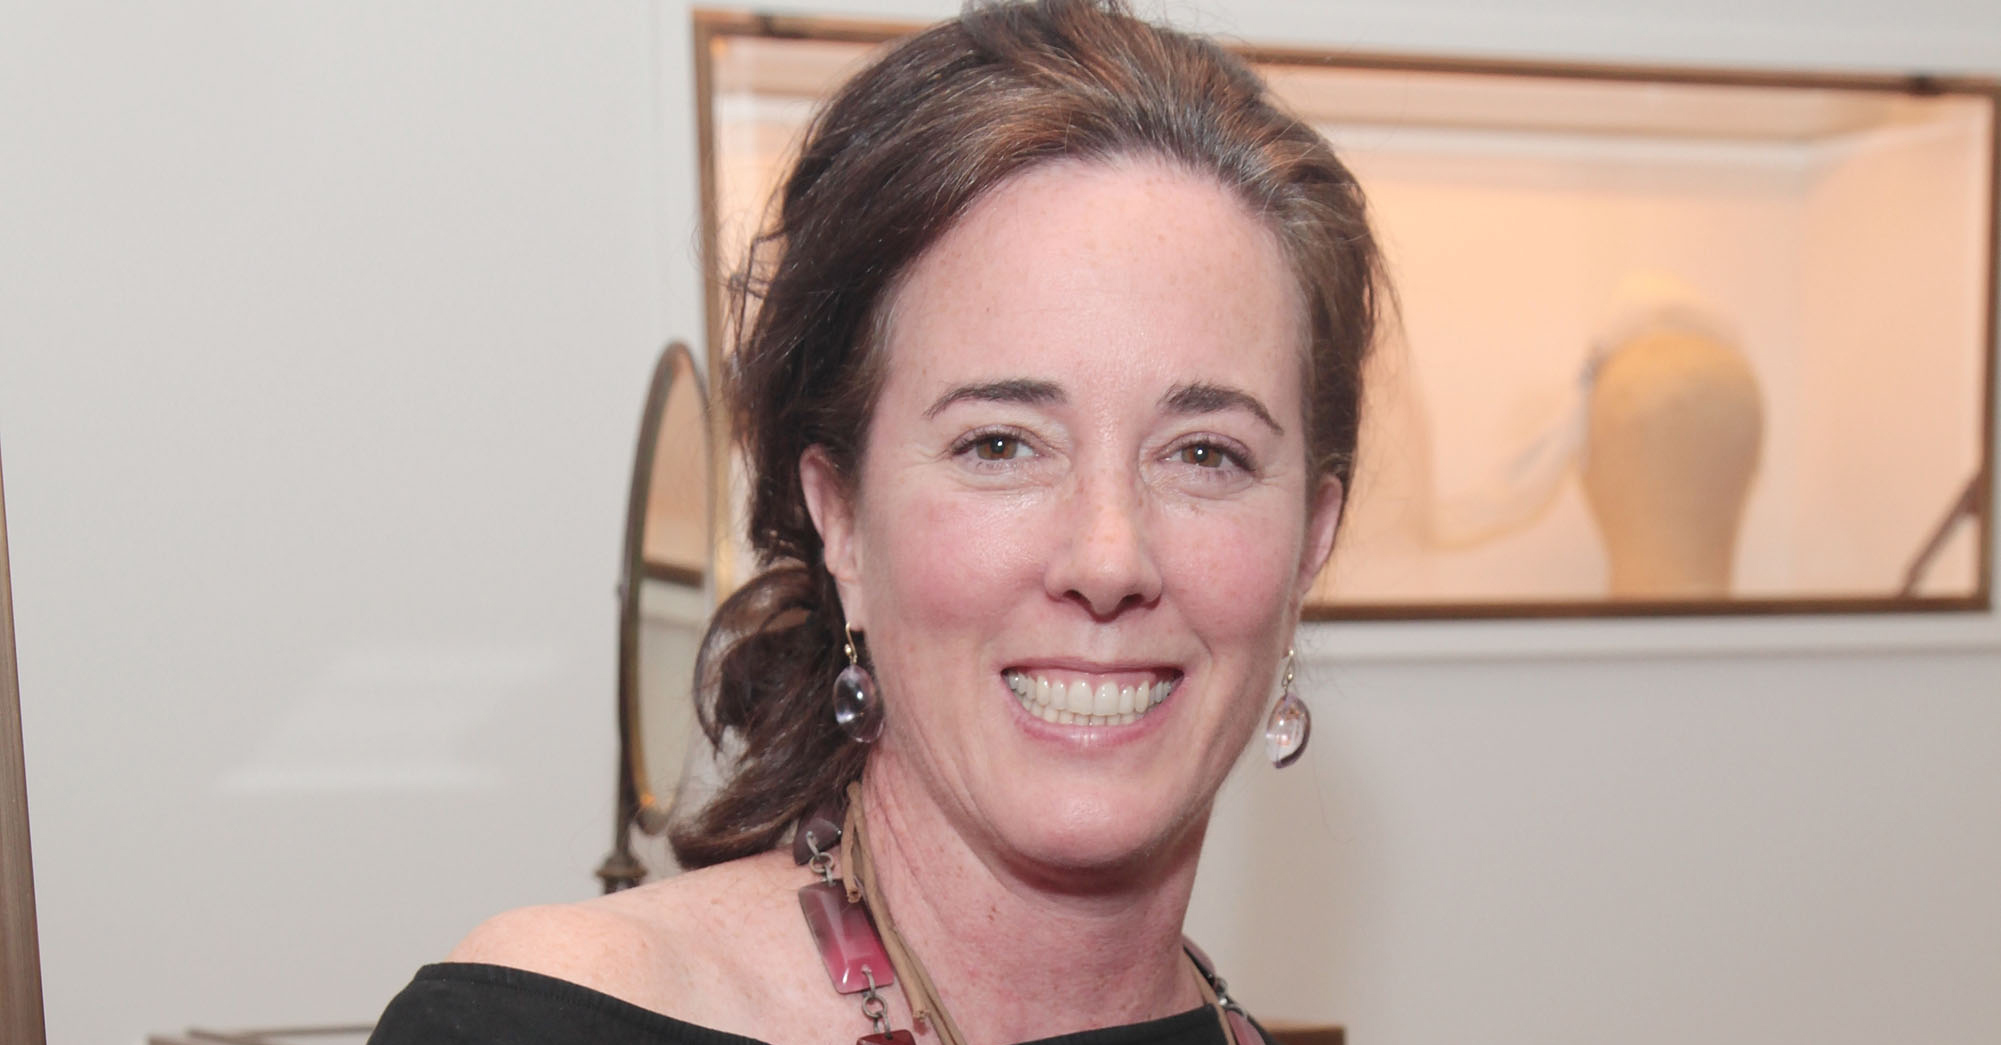 Kate-Spade-Found-Dead-In-Her-NYC-Apartment-Of-Apparent-Suicide